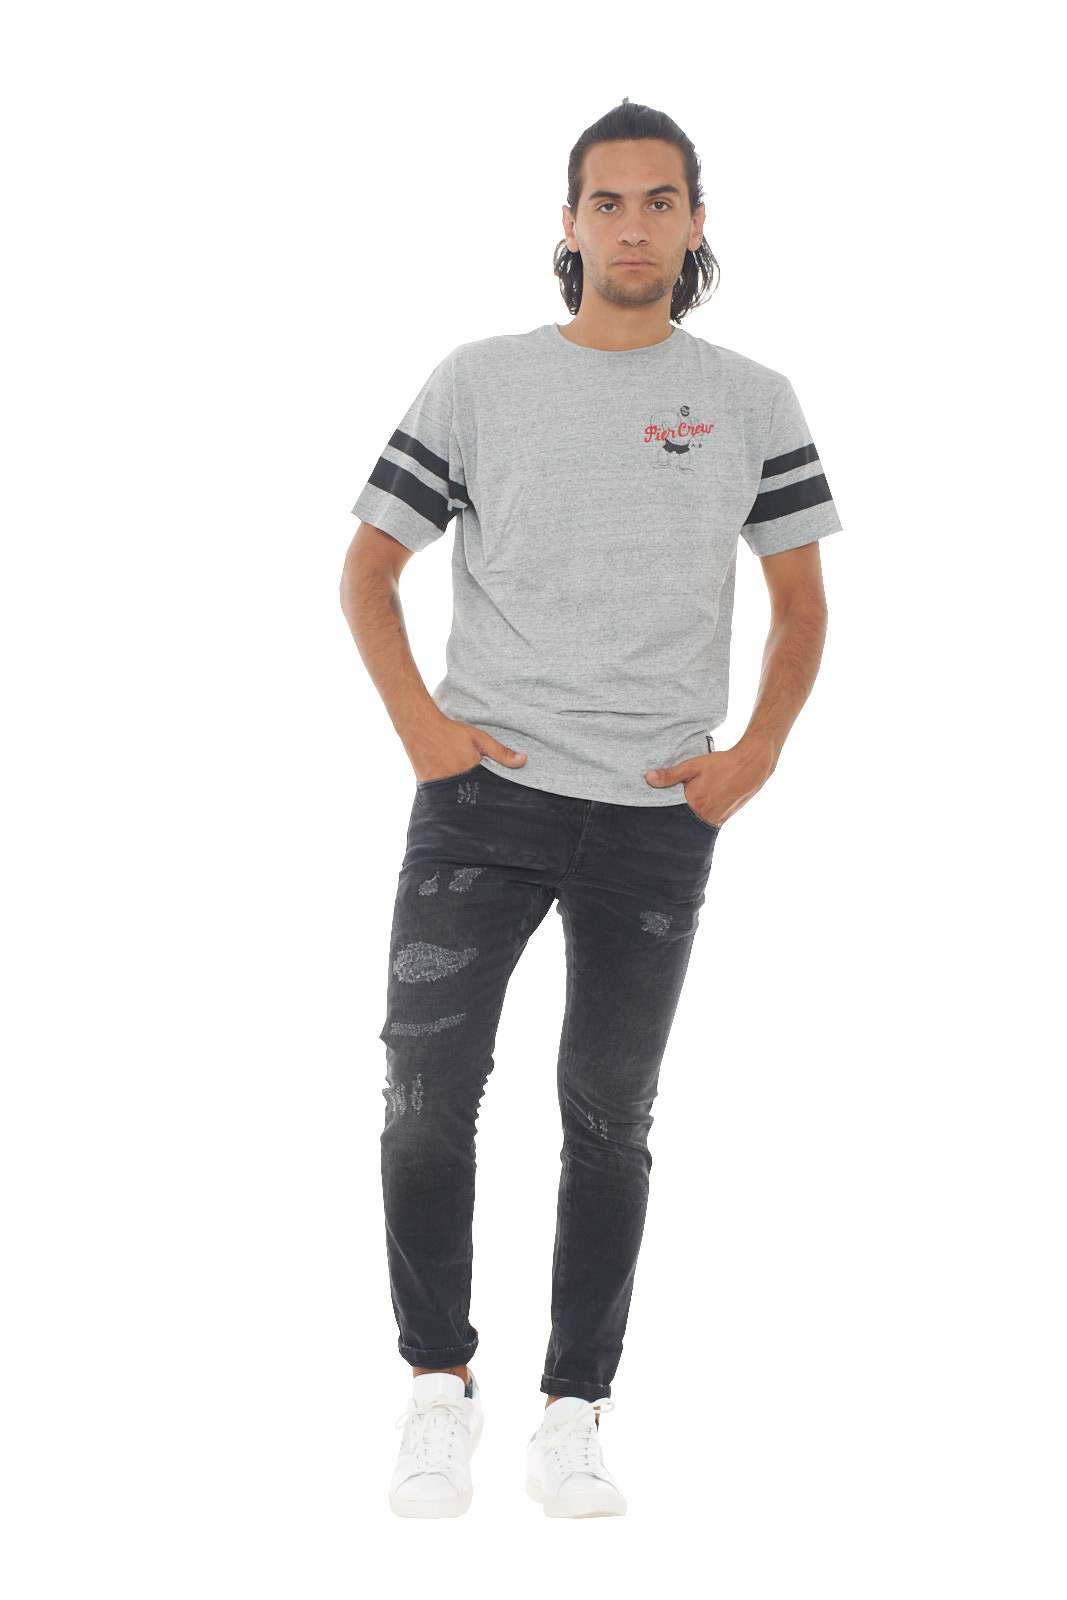 https://www.parmax.com/media/catalog/product/a/i/AI-outlet_parmax-t-shirt-uomo-scotch-e-Soda-150541-D.jpg